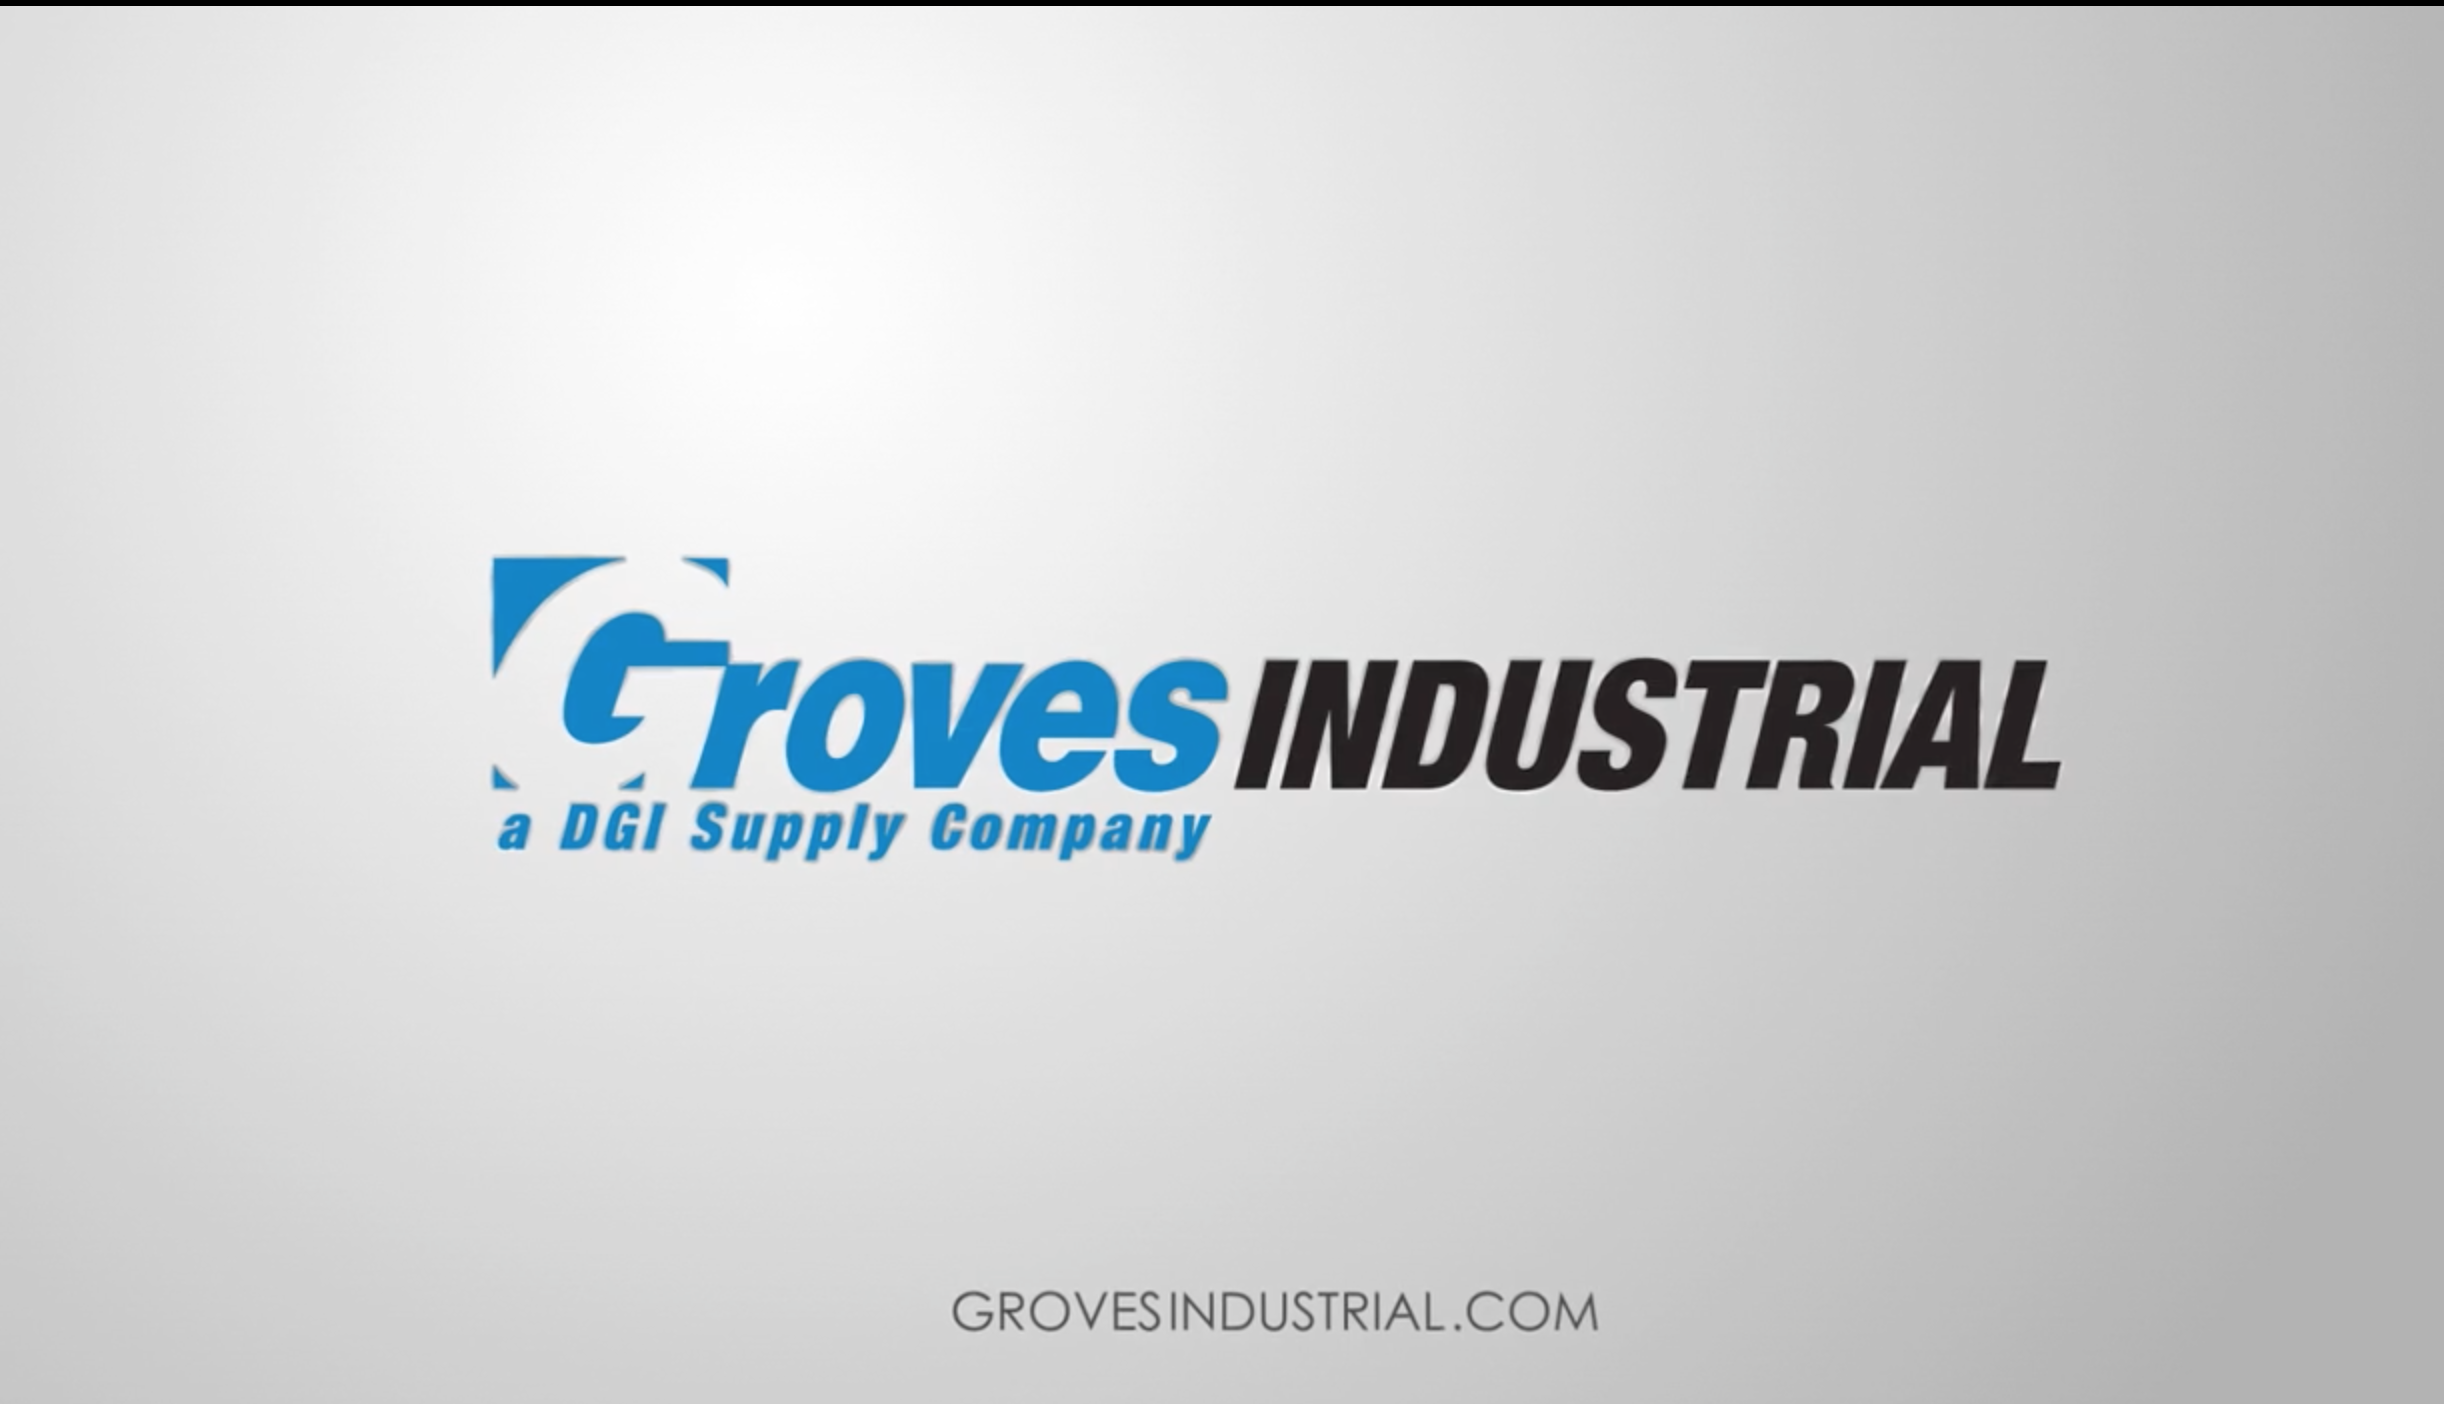 Groves Industrial